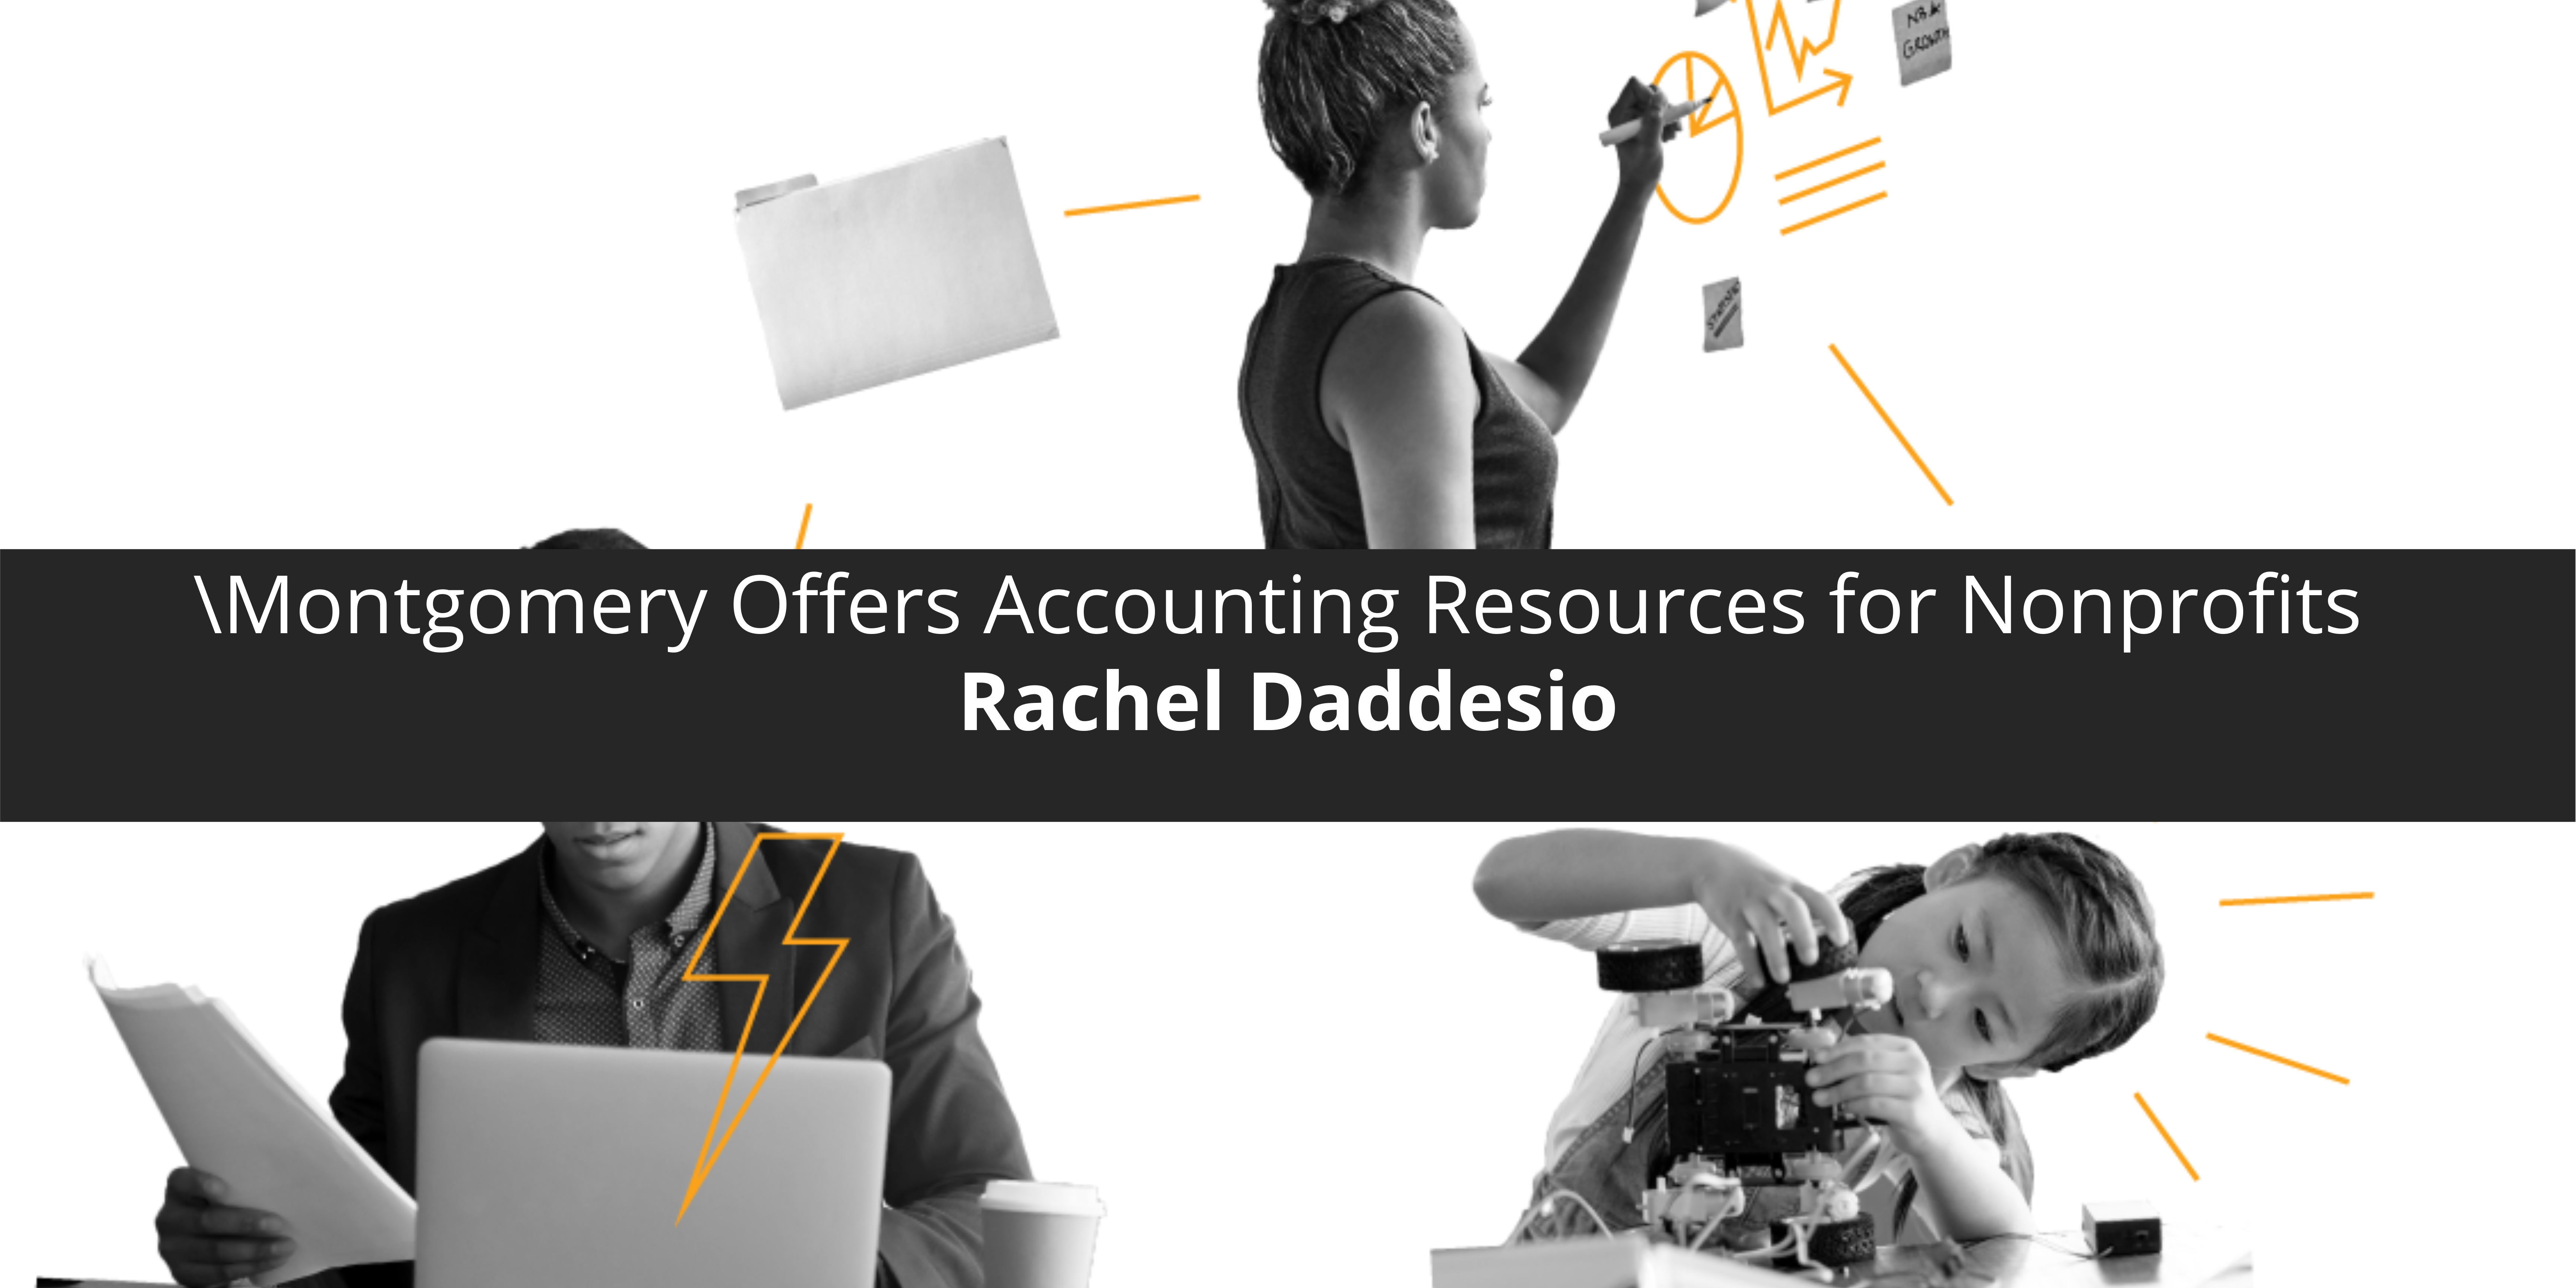 CPA Rachel Daddesio of Montgomery Offers Accounting Resources for Nonprofits